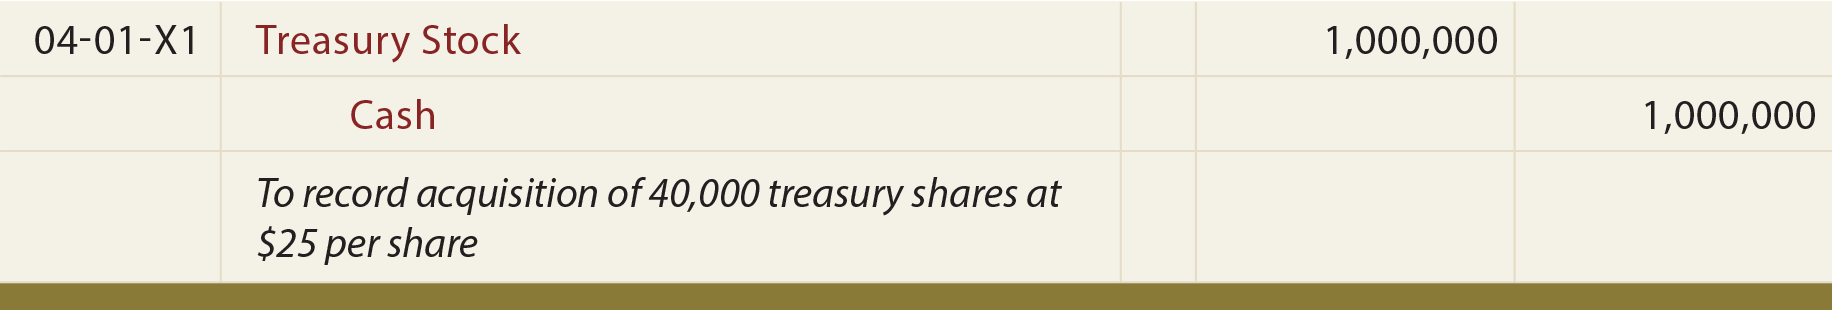 Treasury Stock Journal Entry